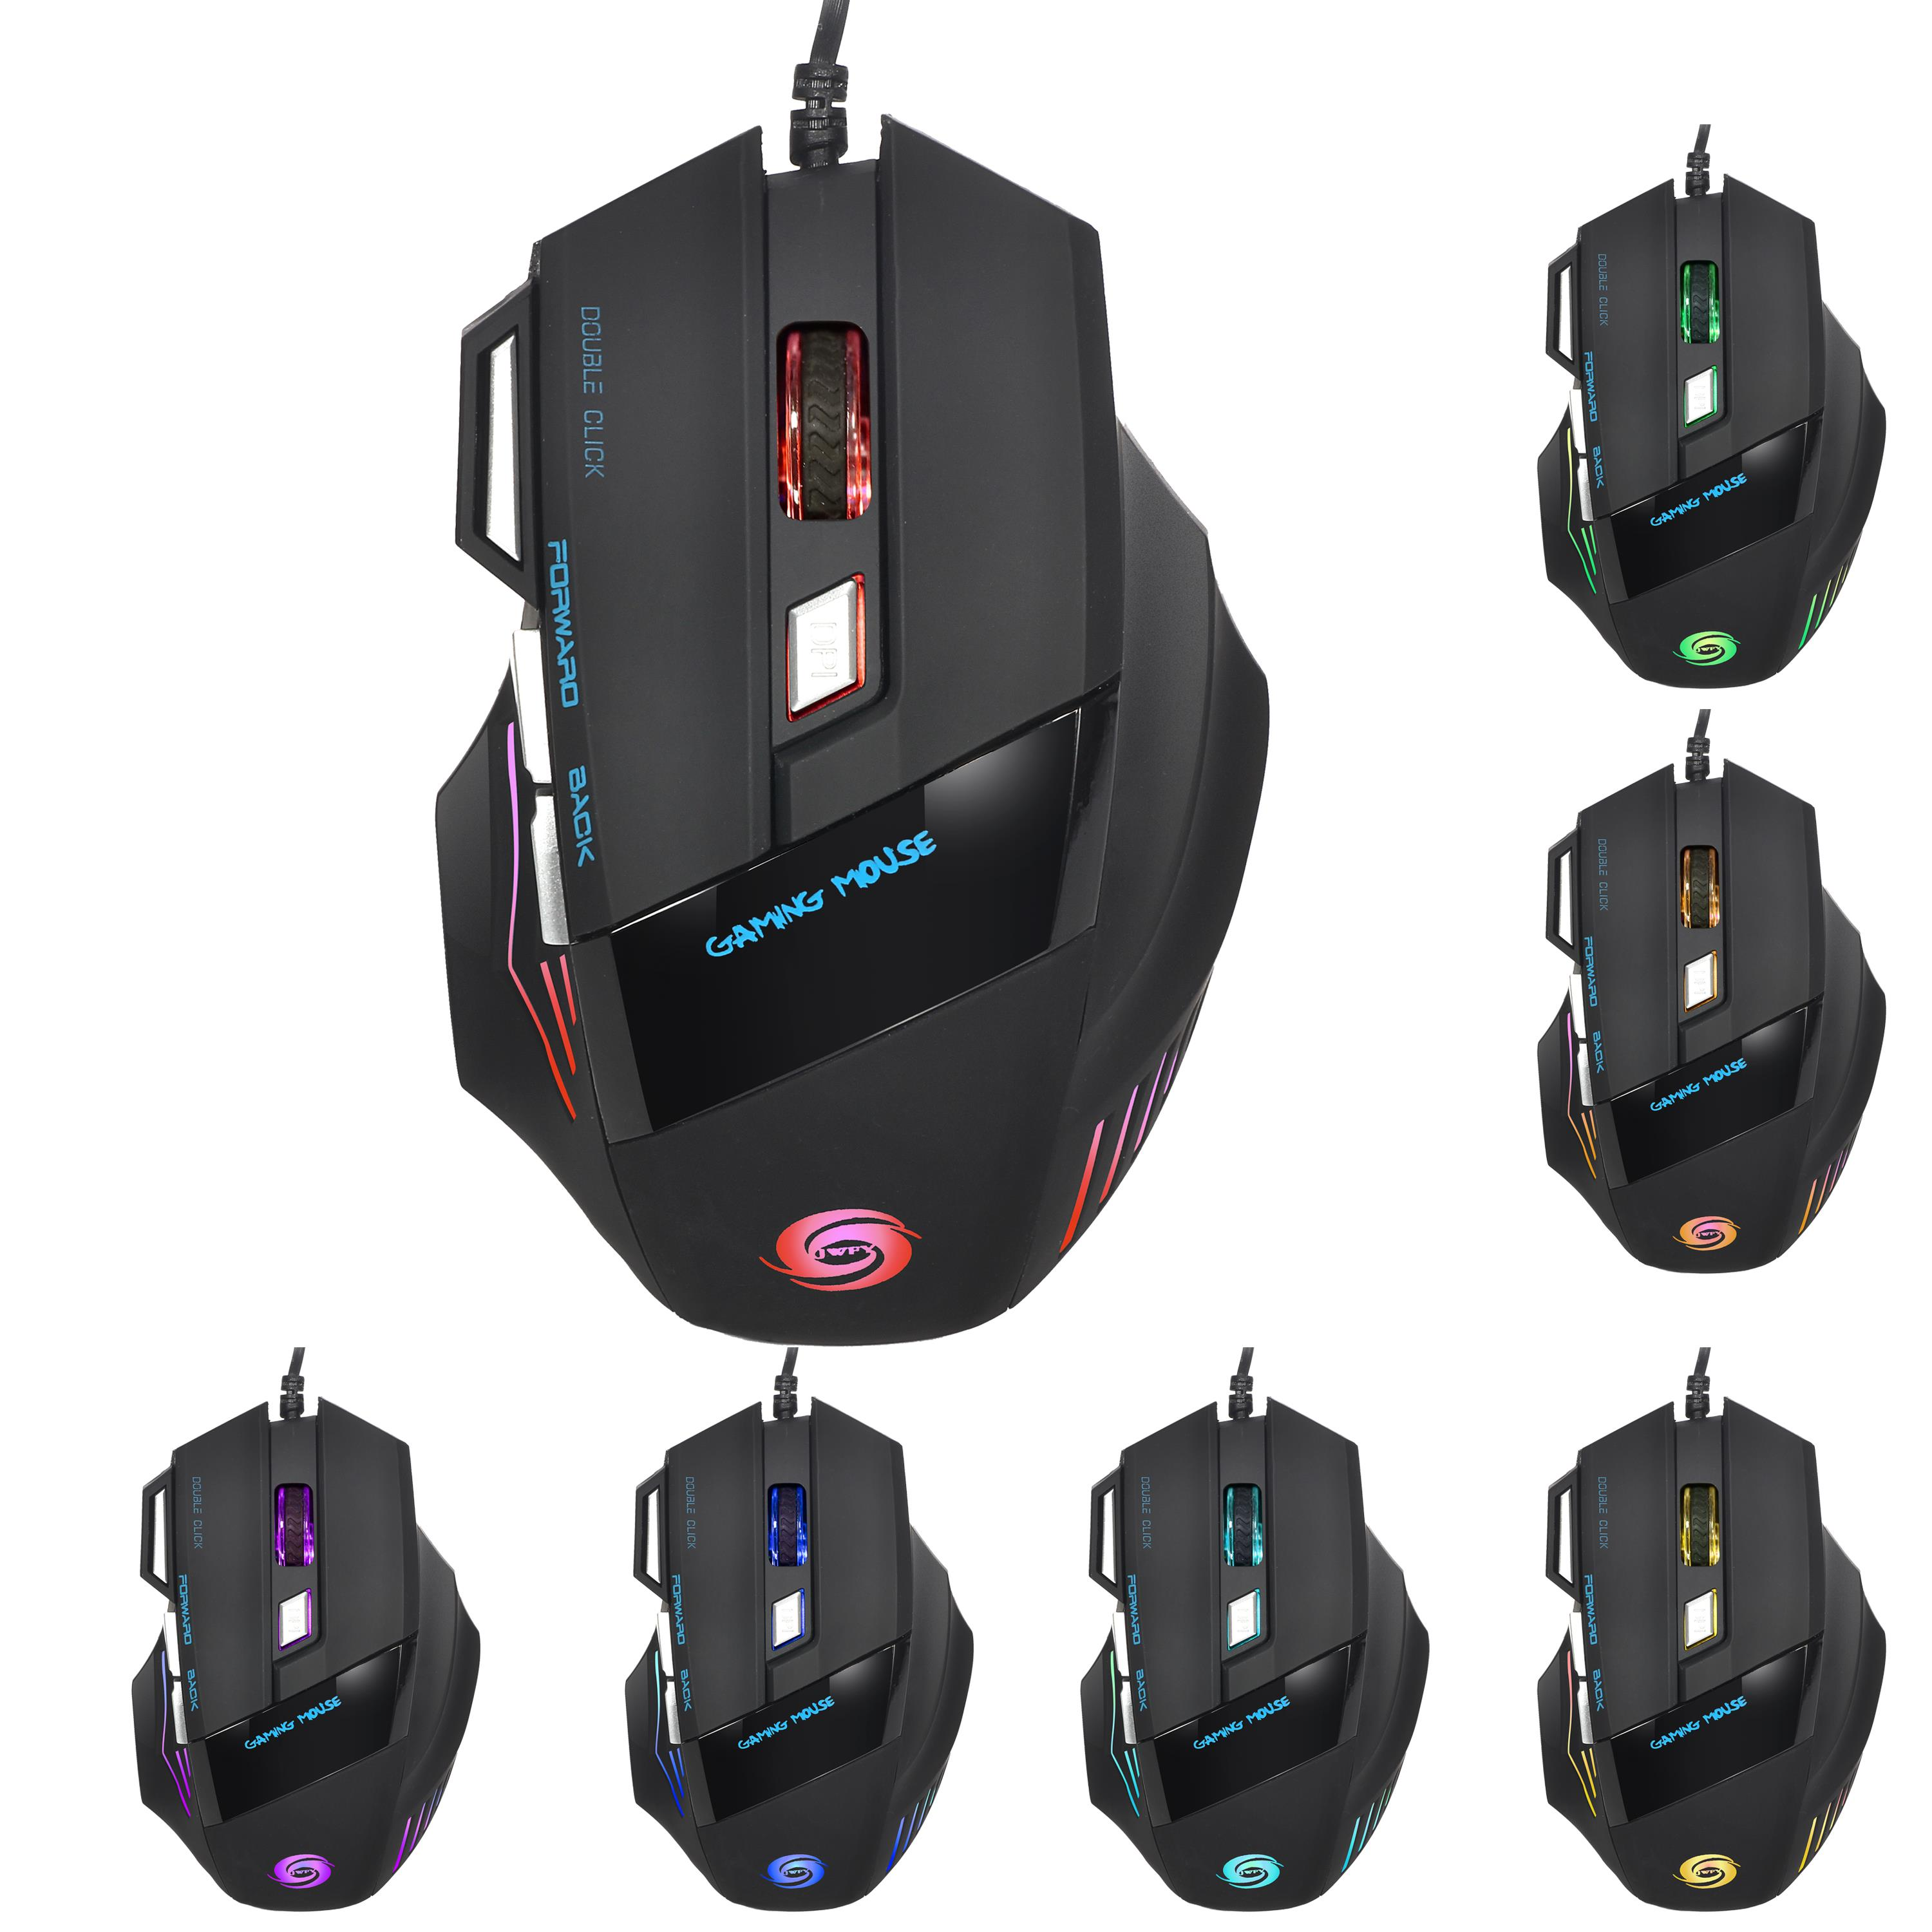 Gaming Mouse 7 Button USB Wired Alternating Light Laptop PC Mouse RGB Backlit US